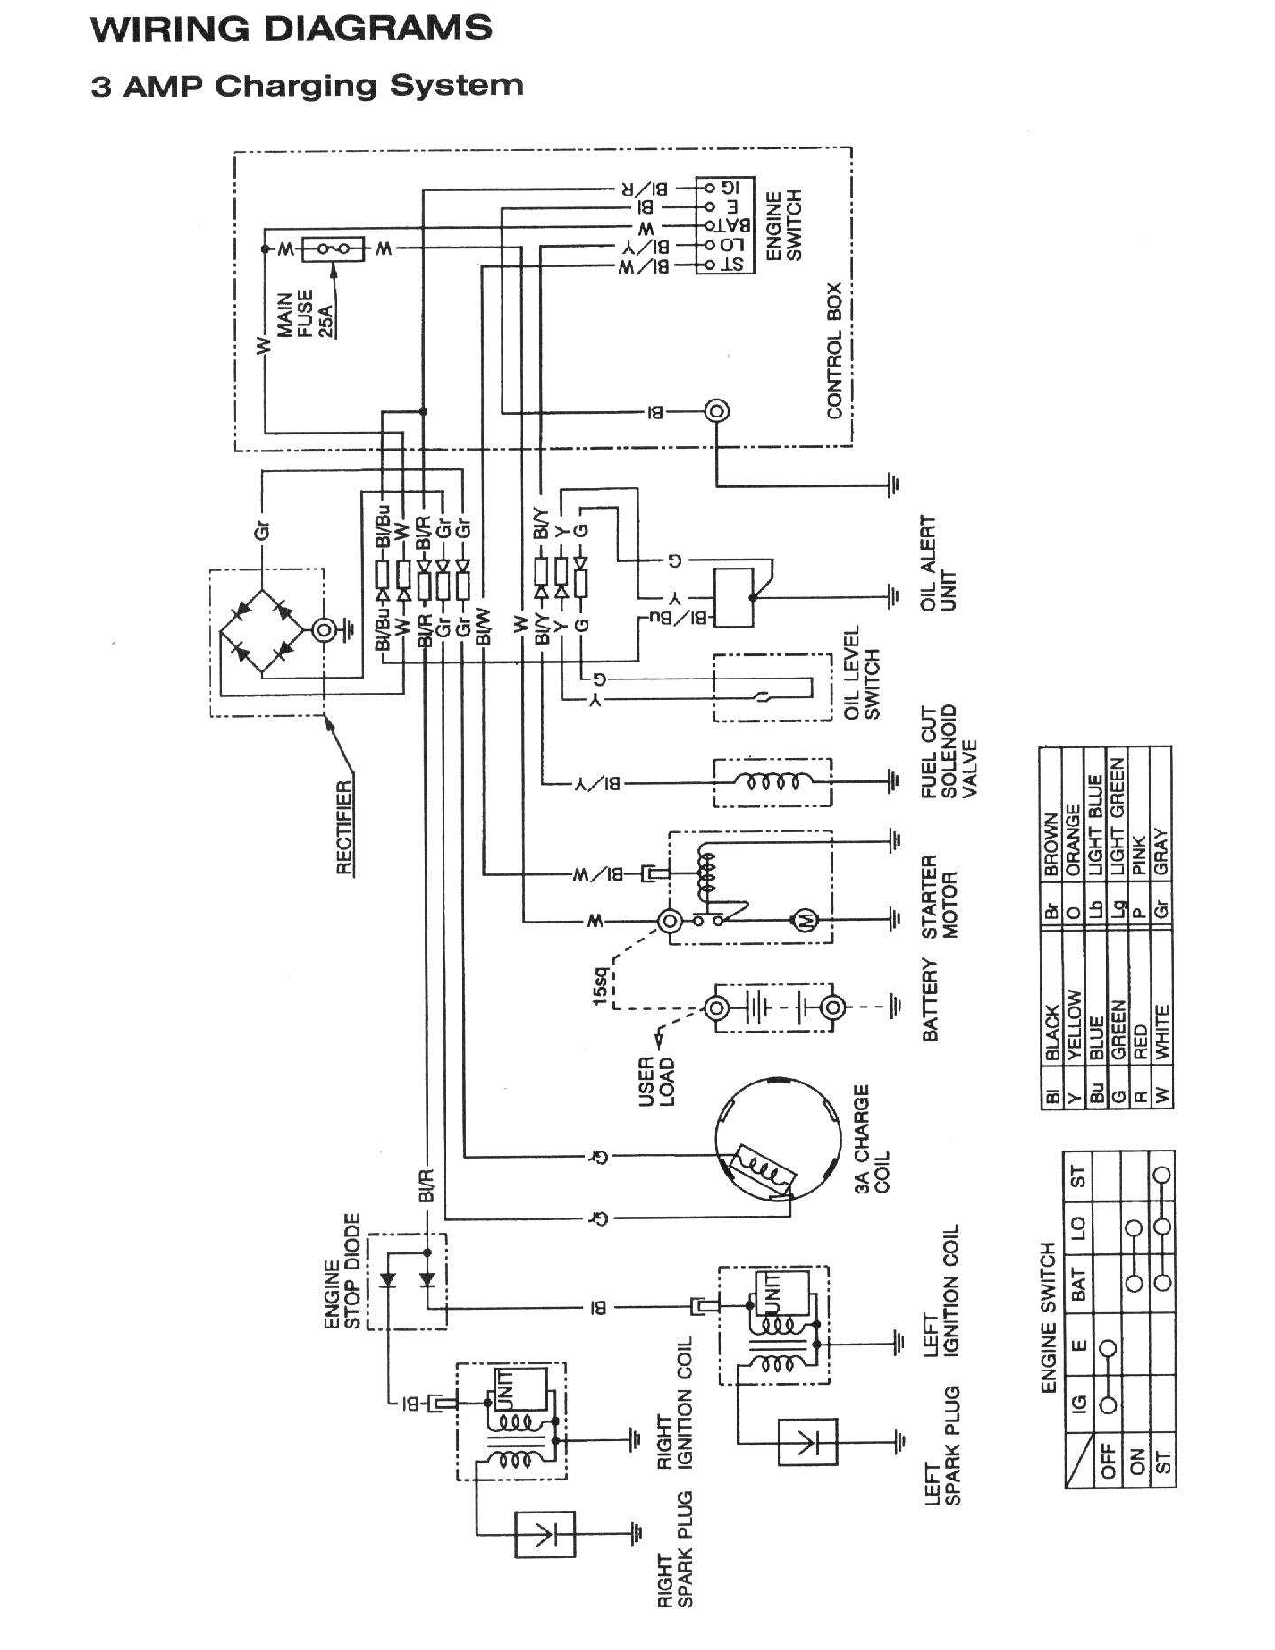 3 5 hp briggs and stratton ignition coil wiring diagram. Black Bedroom Furniture Sets. Home Design Ideas